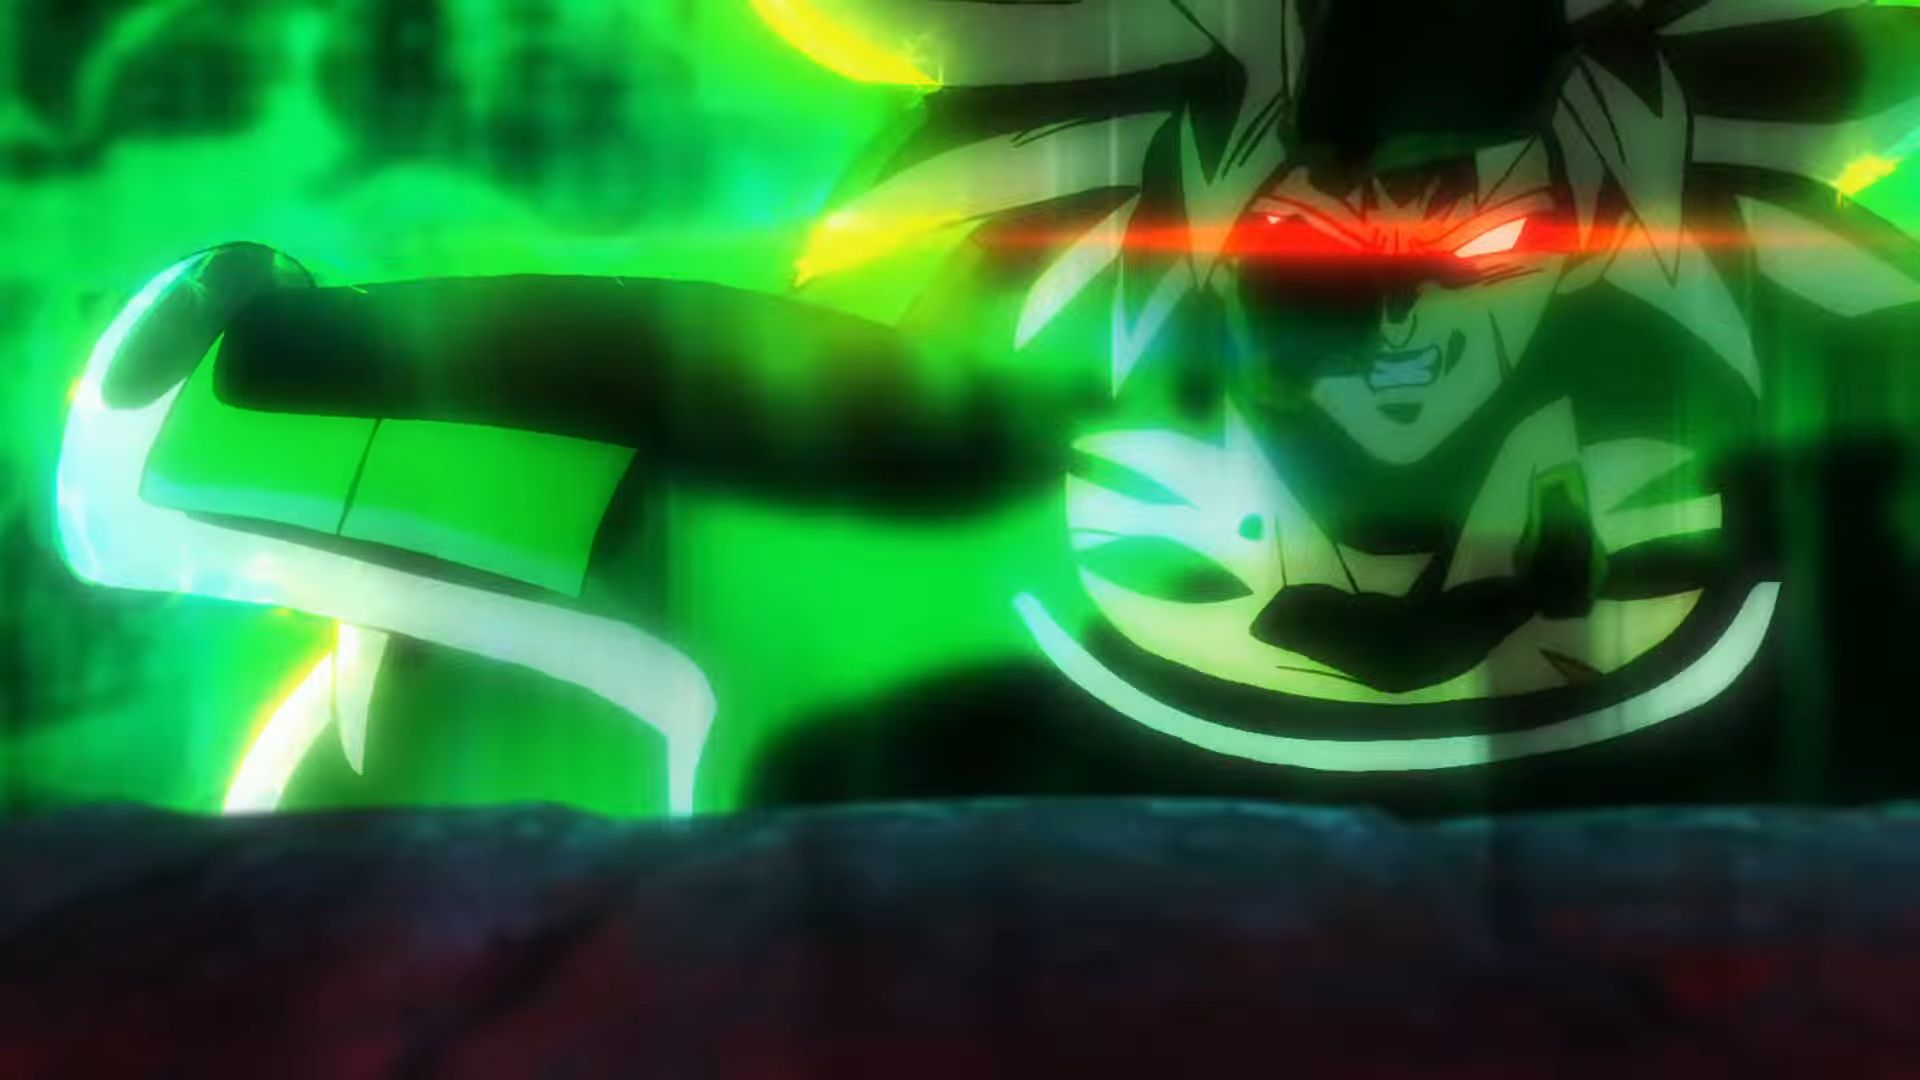 I Am Still Catching Up On Dragon Ball Super But The Trailer For Dragon Ball Super Broly Looks Amazing The New Design For Broly Just Gets Better And